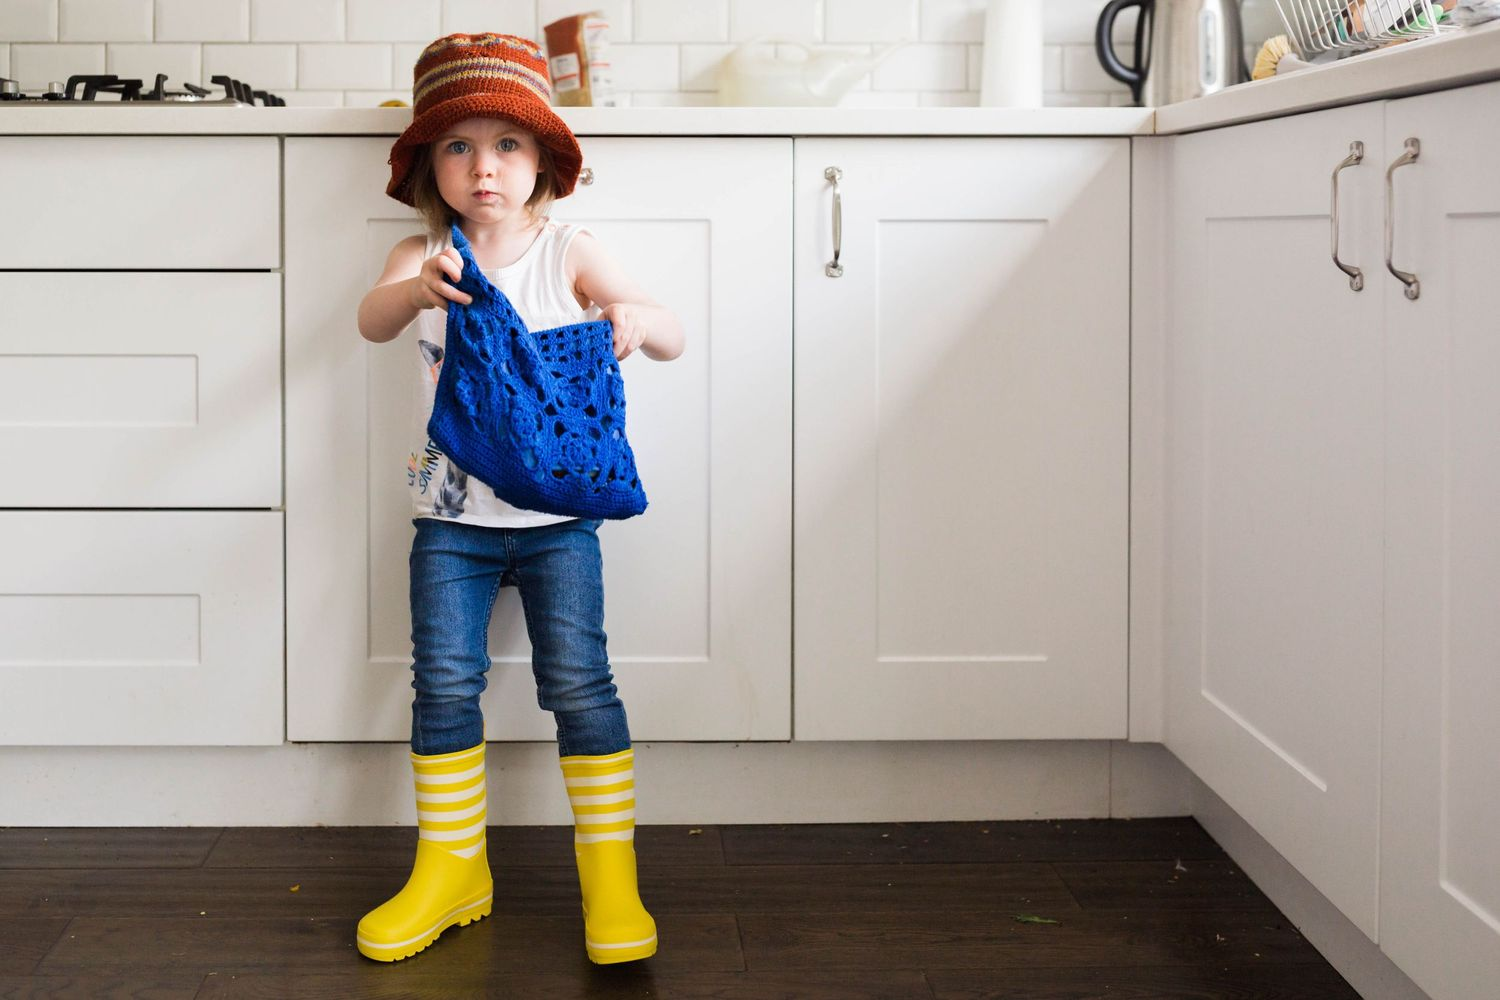 emilia at three years old dressed in funny clothes yellow wellies